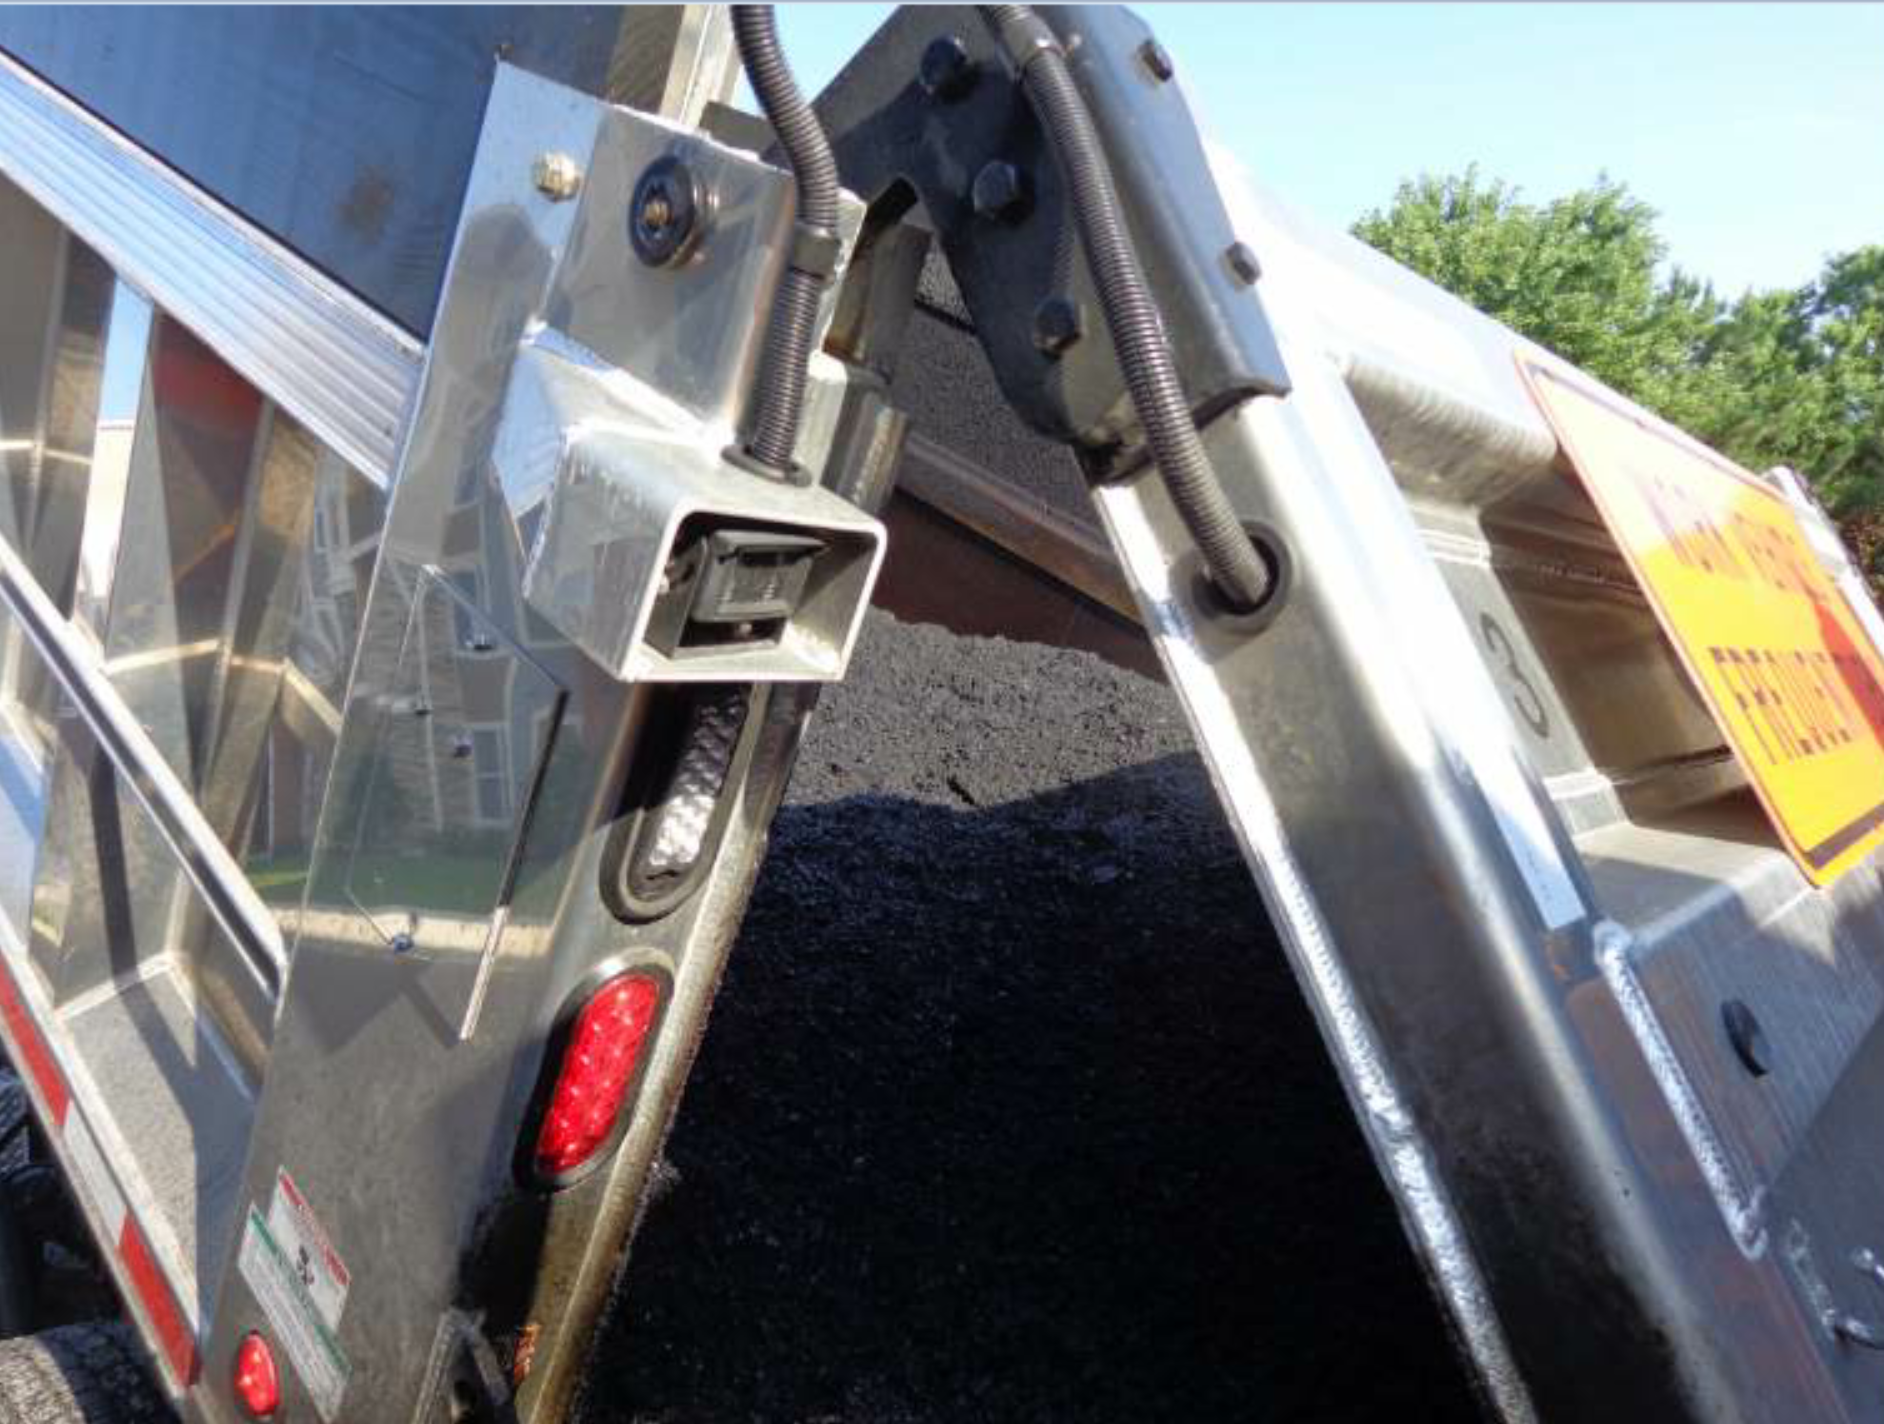 To increase visibility of a percentage of the area behind the haul truck, drivers and fleet managers can install wireless or wired backup camera systems with either black-and-white or full color display screens in truck cabs. Options in today's marketplace cover the gauntlet, with robust protective covers, like the one you see here, for the cameras used on construction projects.